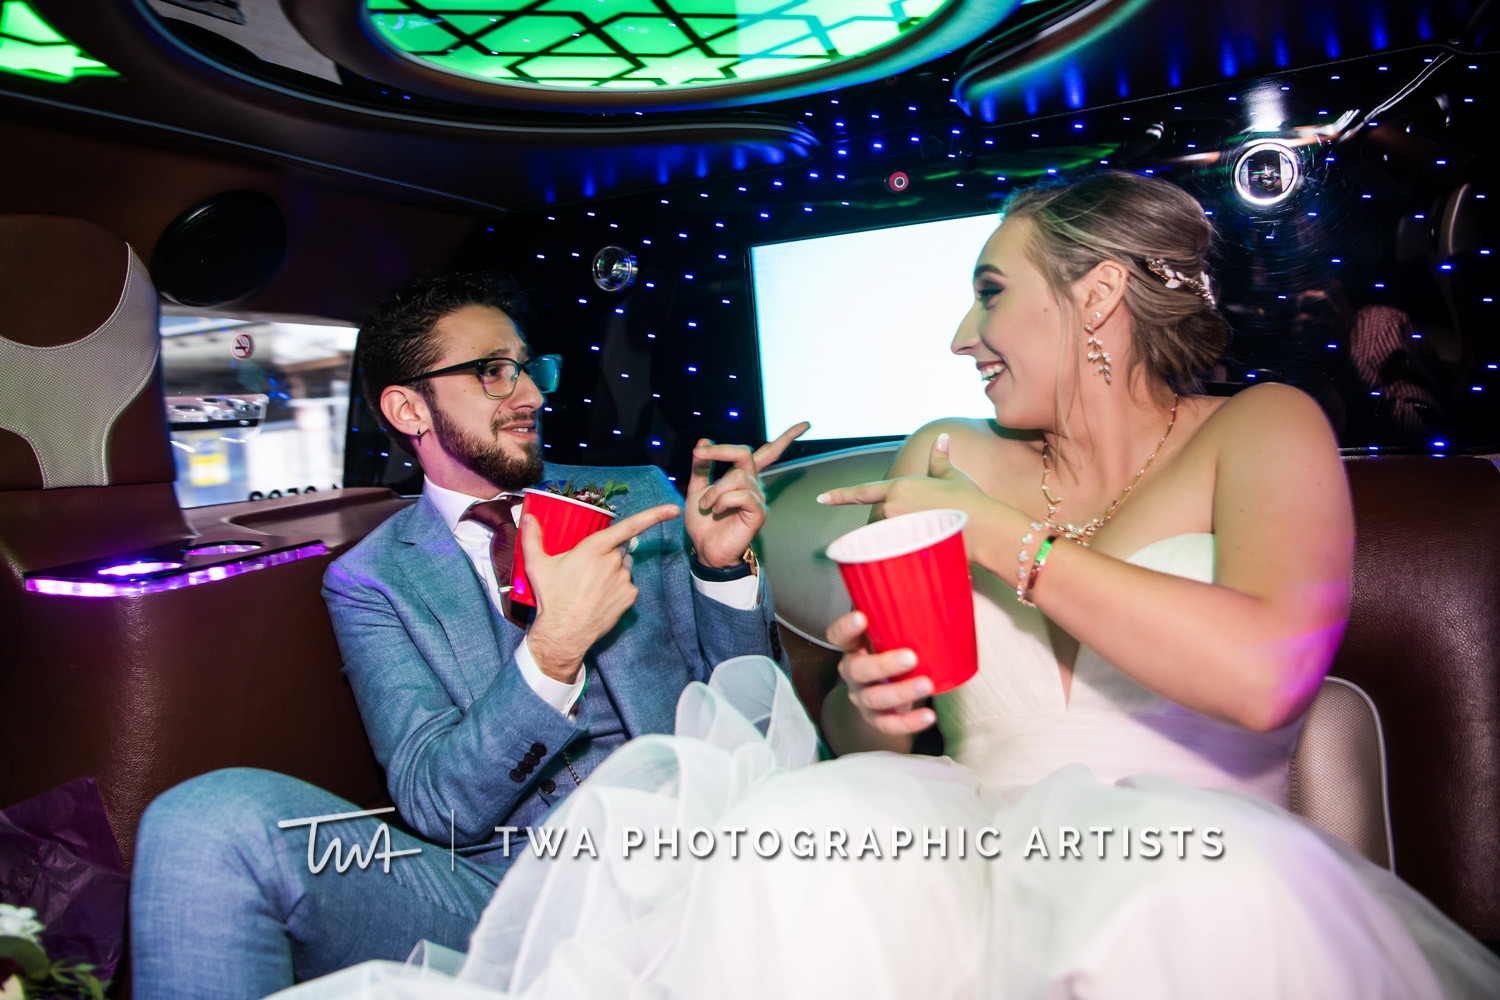 Chicago-Wedding-Photographer-TWA-Photographic-Artists-City-Hall-Event_Masterova_Alkhateeb_AA-0319